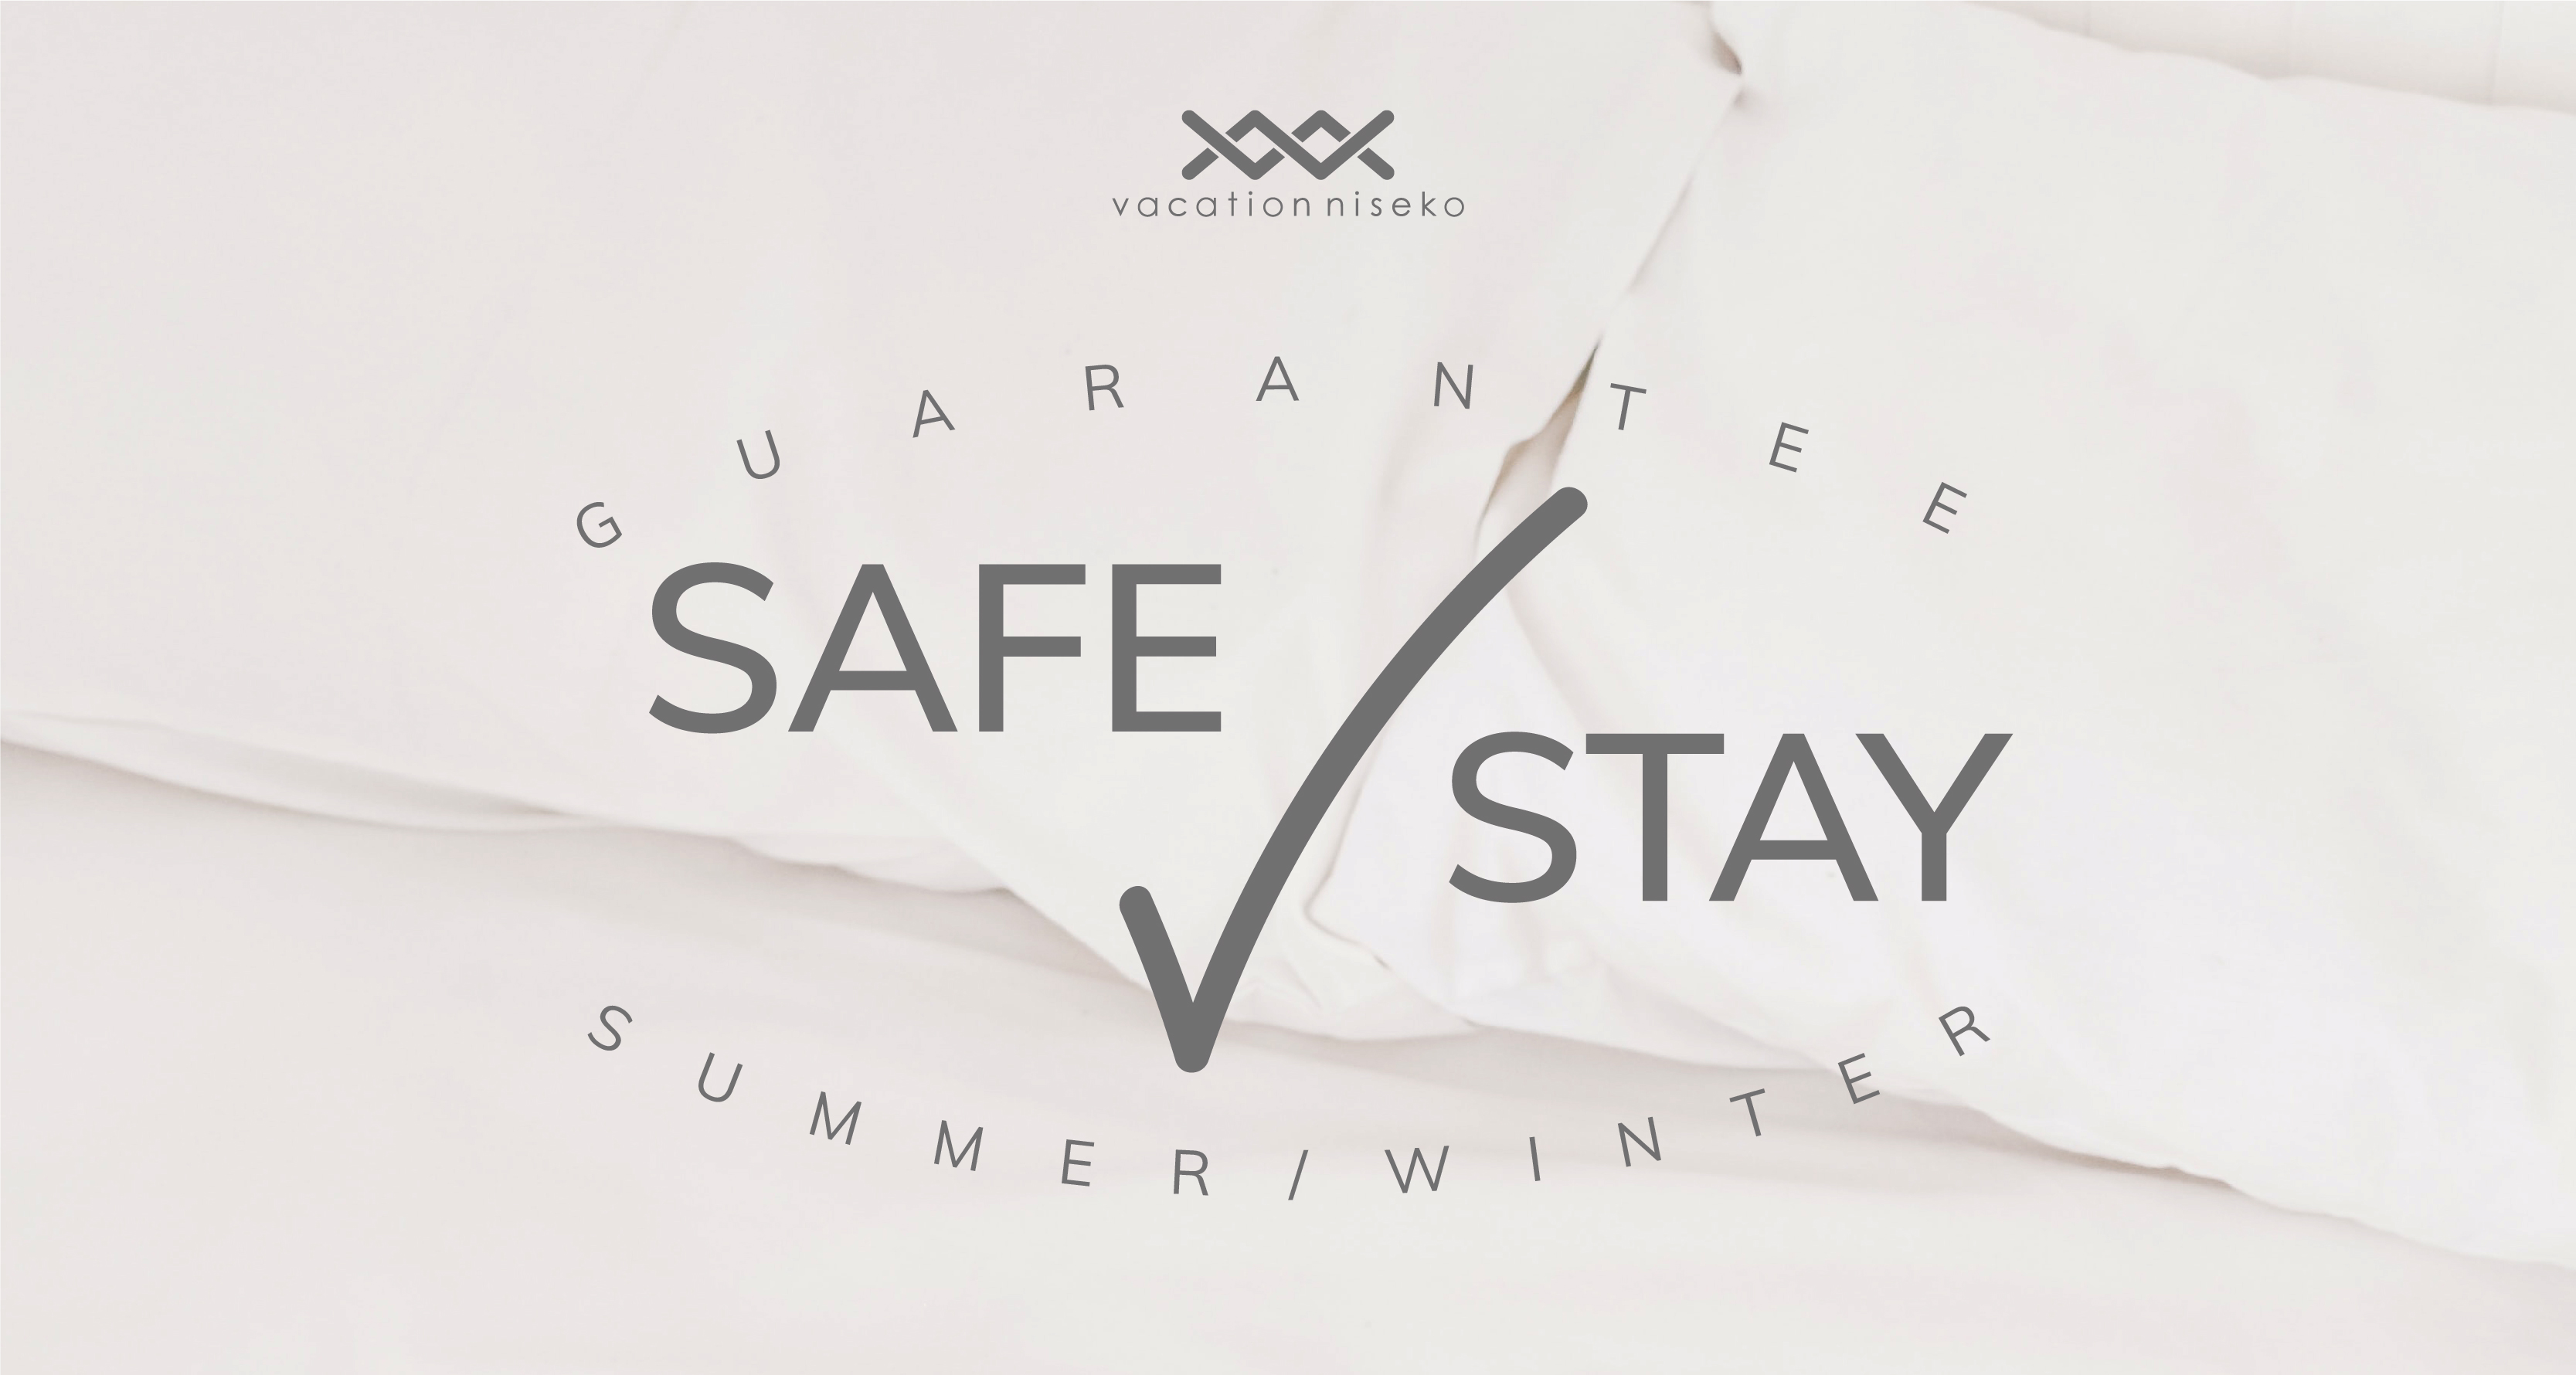 vacation niseko safe sty guarantee